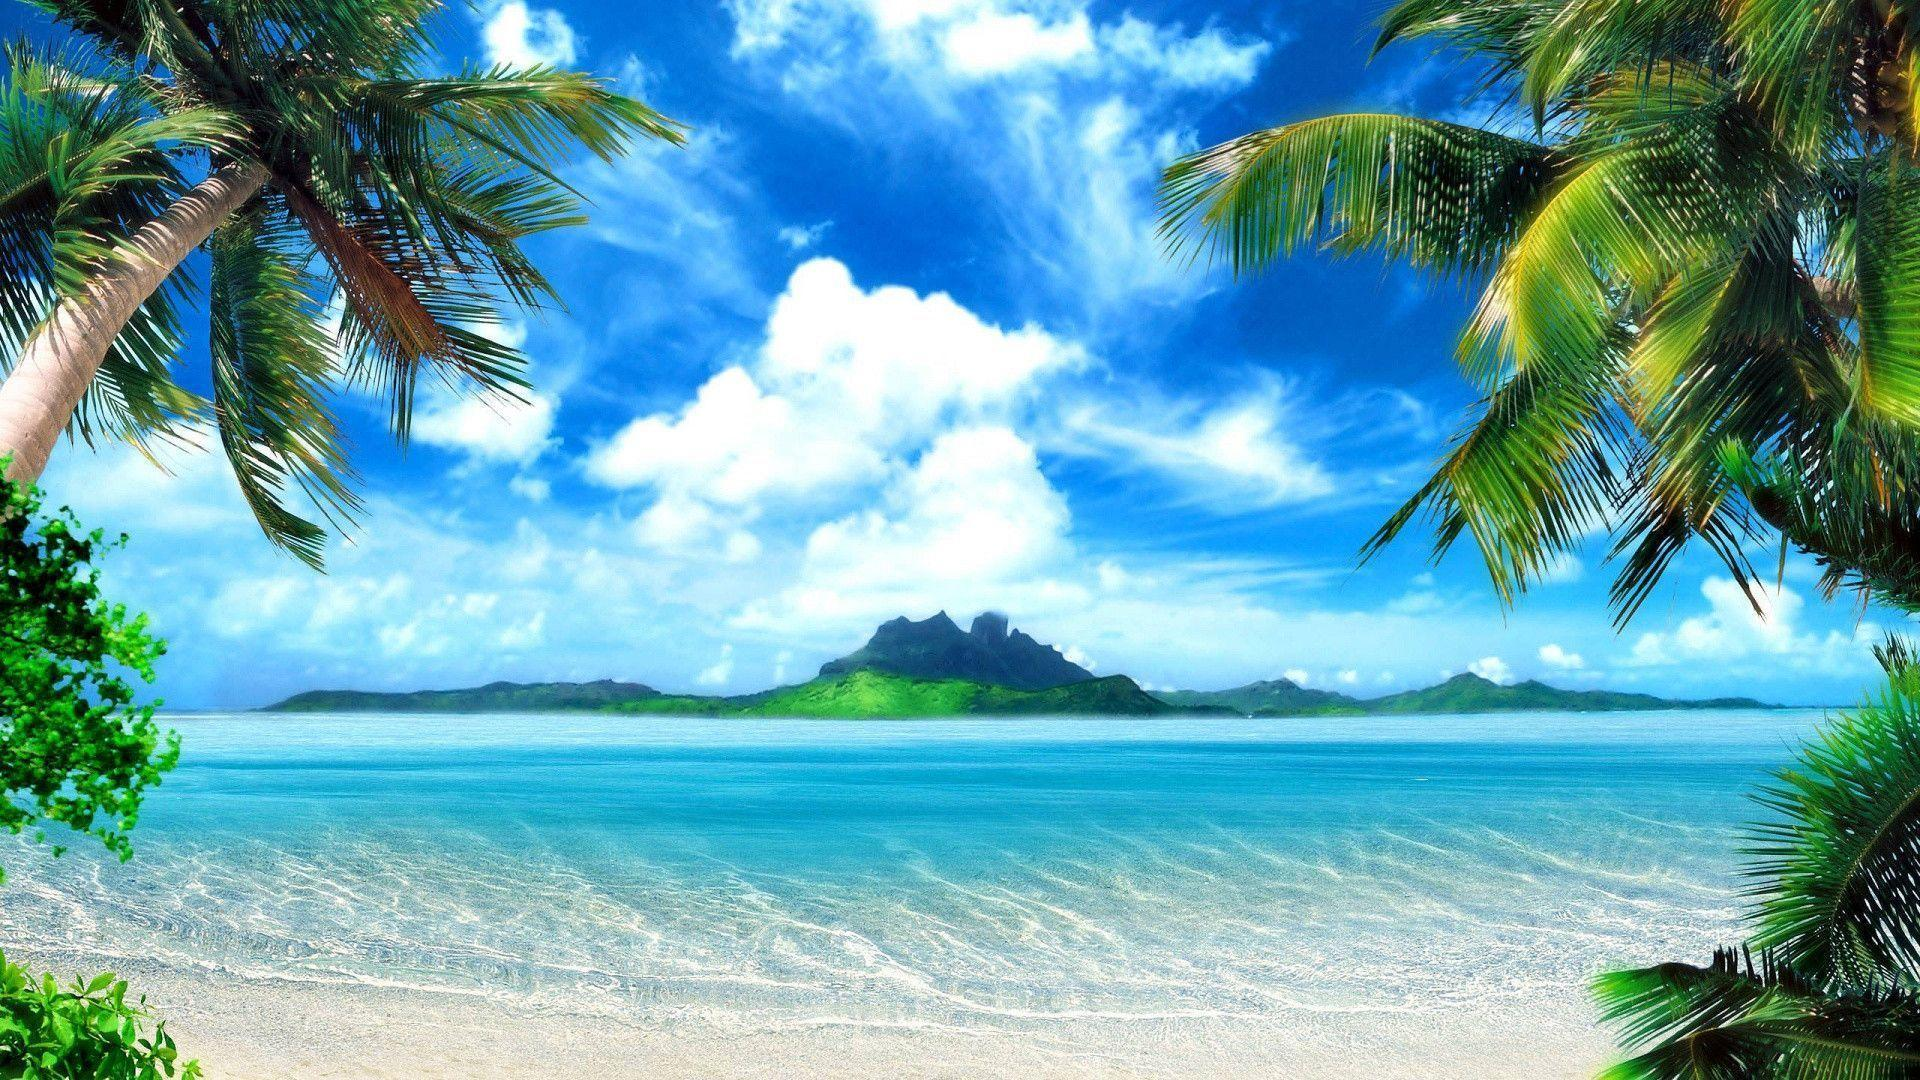 1920x1080 Tropical Beach Backgrounds Wallpapers